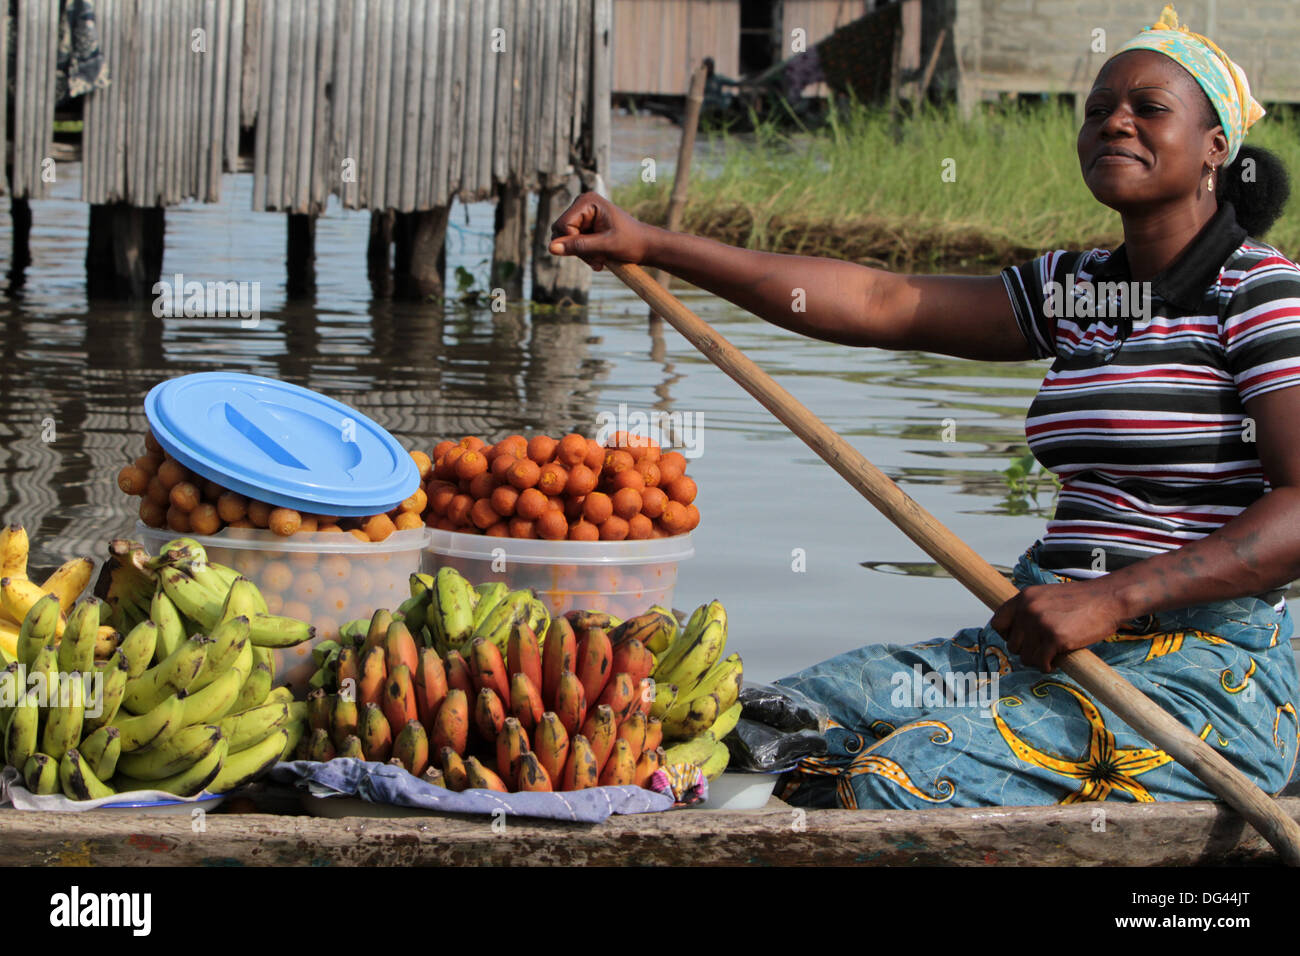 African woman mark paddling a canoe carrying fruit to market, Ganvie, Benin, West Africa, Africa - Stock Image